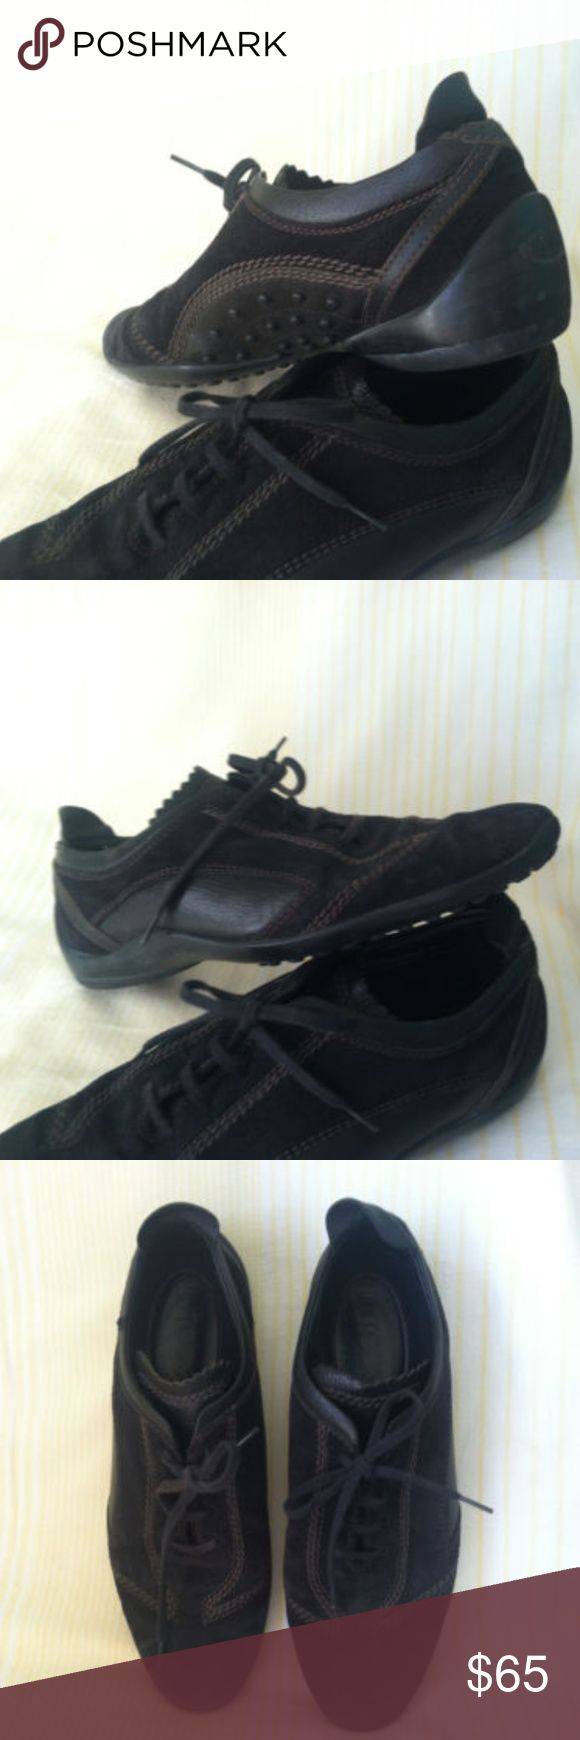 TOD'S Leather Suede Fashion Sneakers Great used condition.  TOD'S Women's size 7 (EU 37) Black Suede Driving Loafers Flat Shoes Fashion Sneakers. Black leather trim, brown stitching. Comfort casual gorgeous!  MADE IN ITALY. Tod's Shoes Sneakers